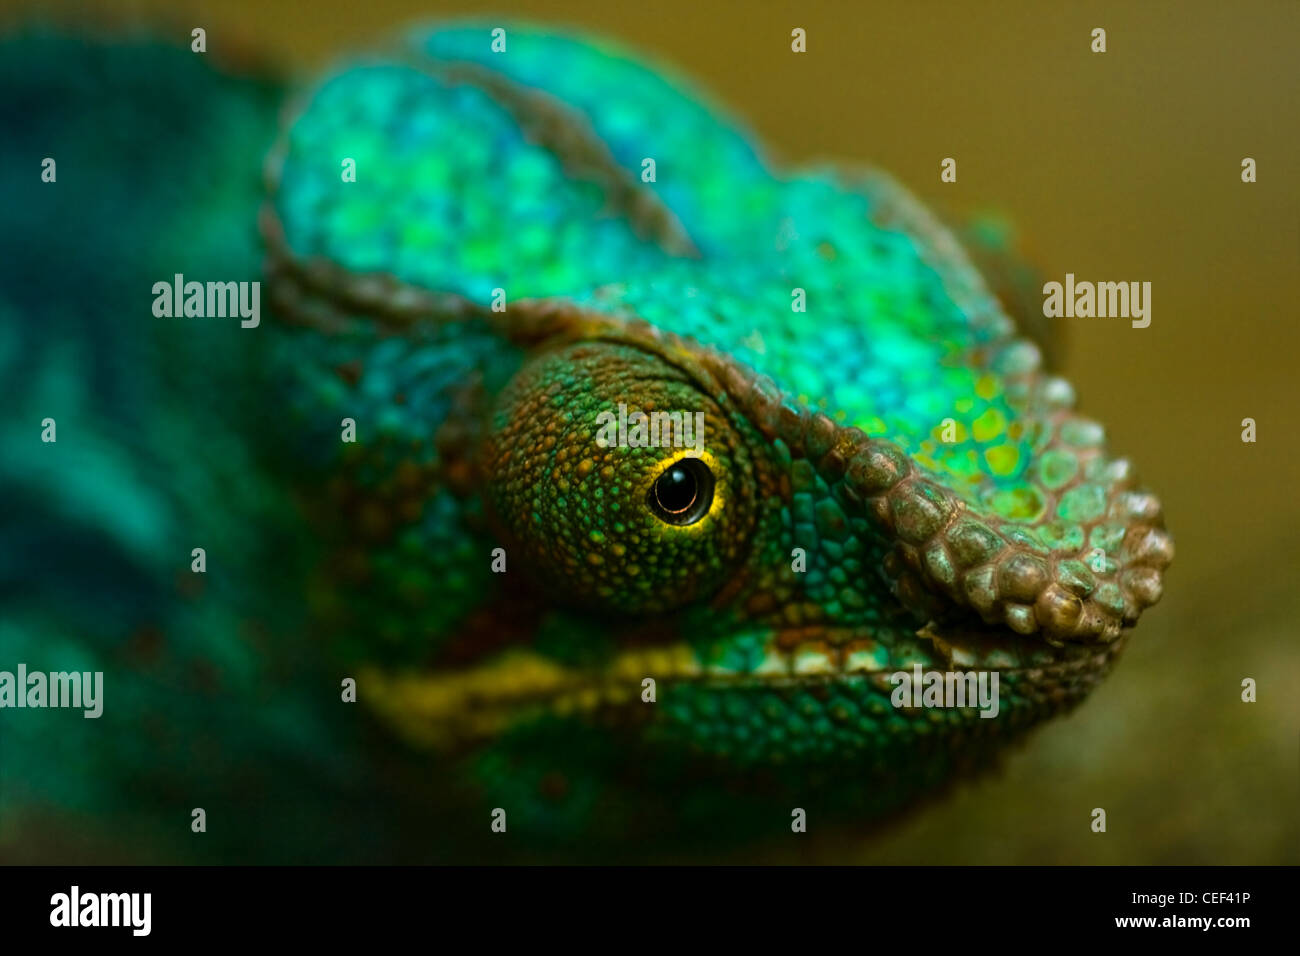 Head of colorful Panther chameleon or Chamaeleo pardalis in close view with shallow dept of field - Stock Image